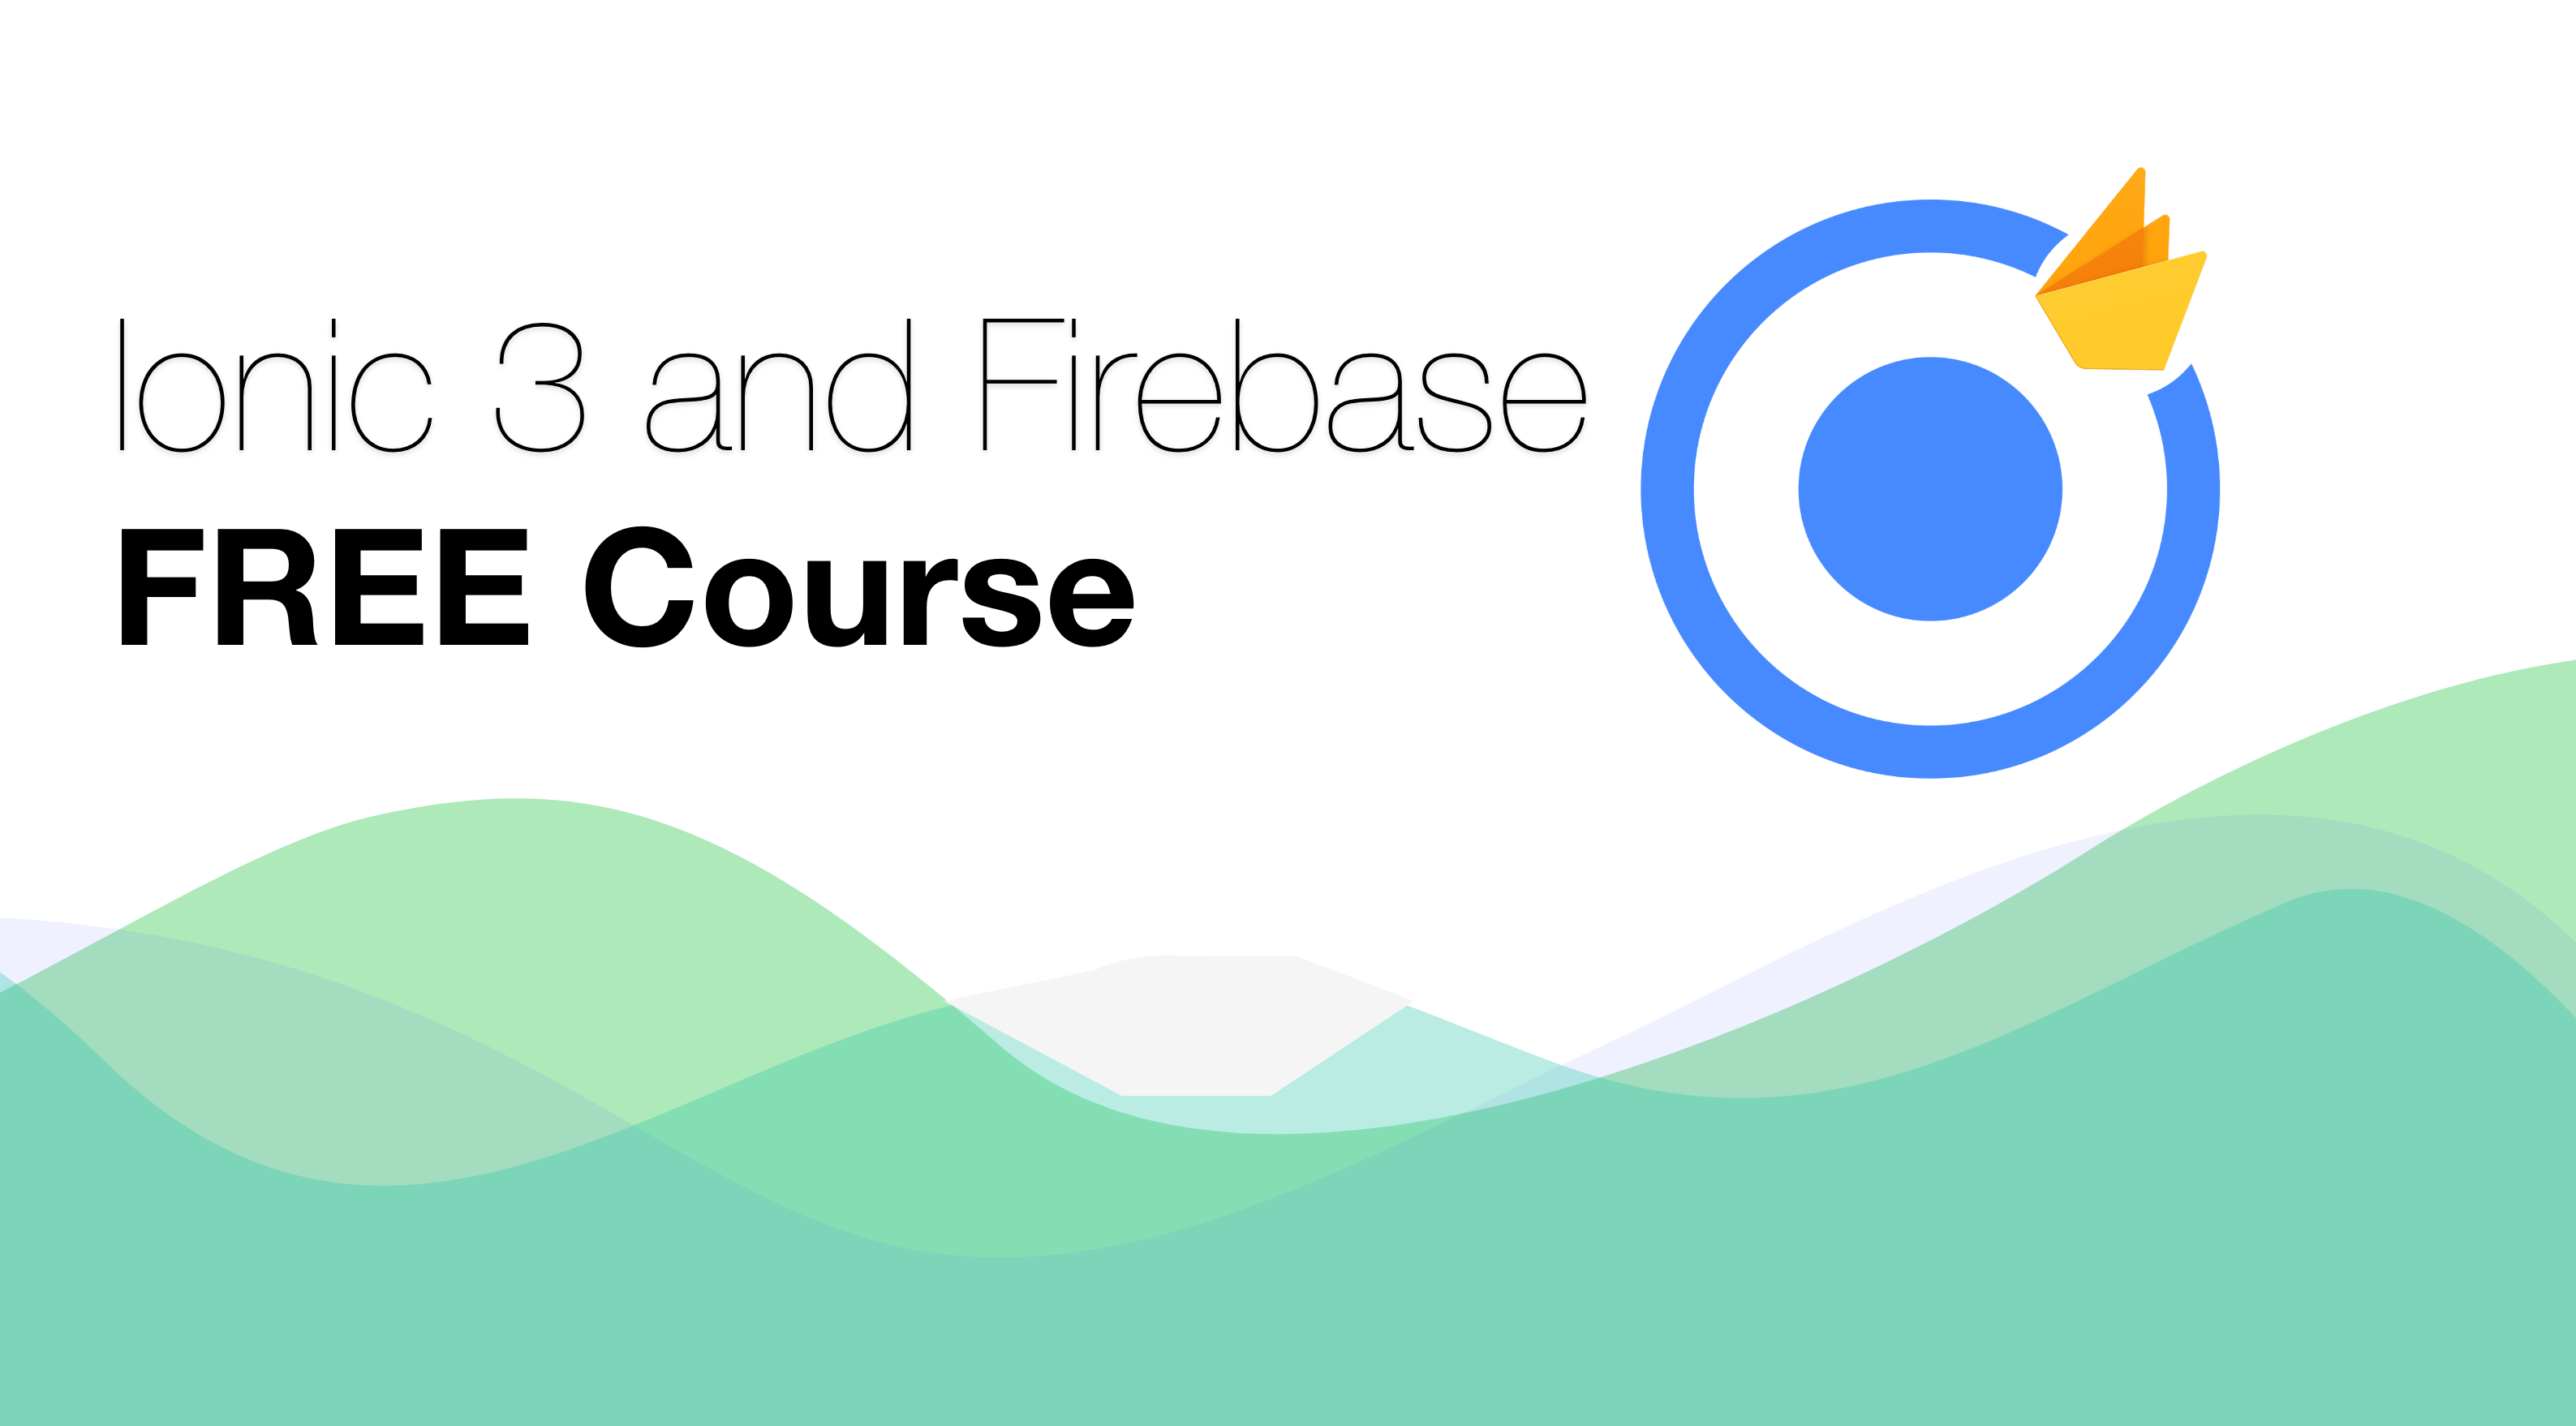 Create a Shopping List Application with Ionic 3 and Firebase